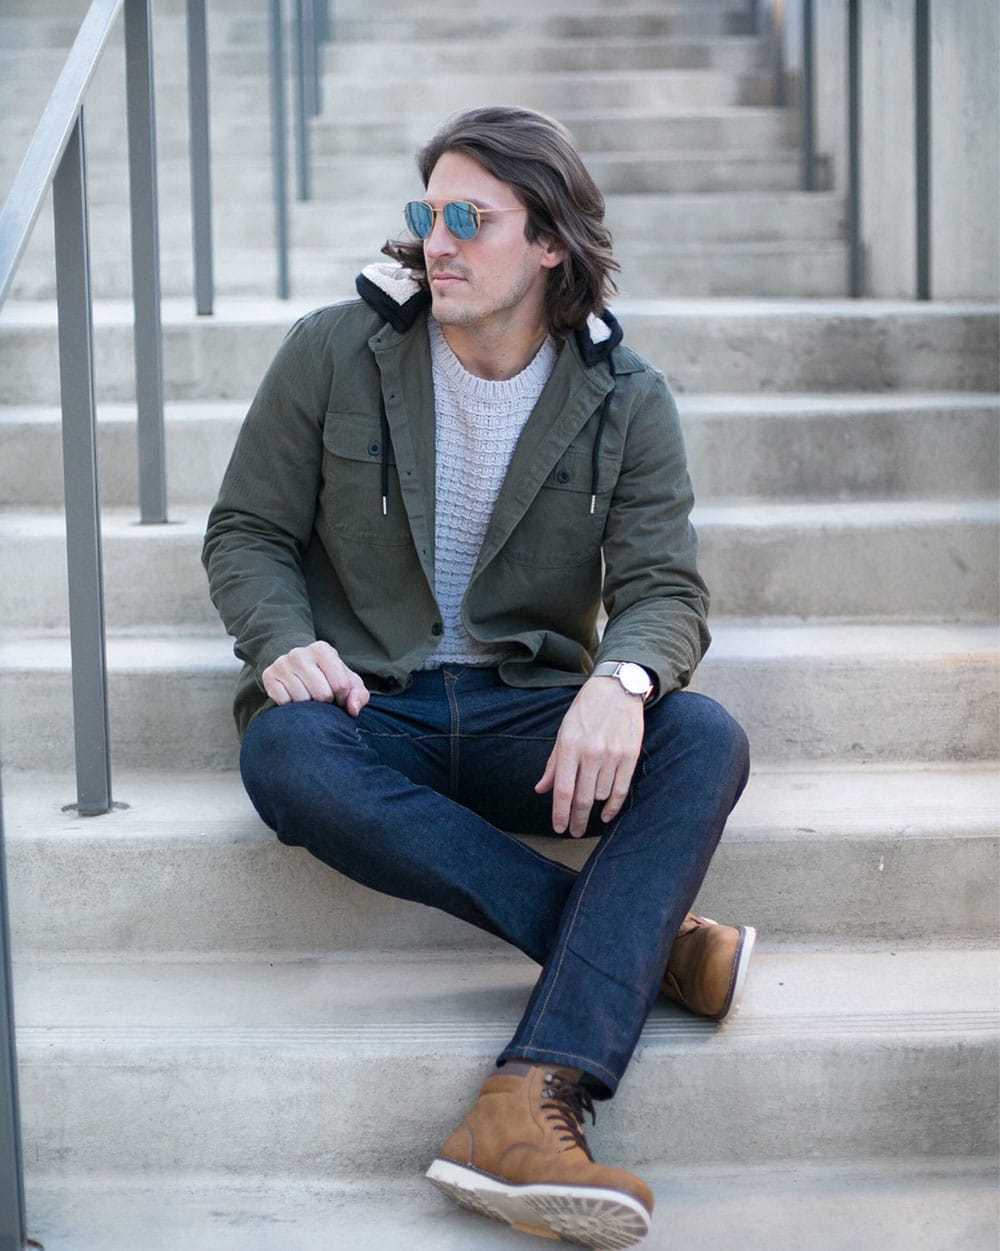 Green Coat with Grey SHirt, Jeans and Brown Boots